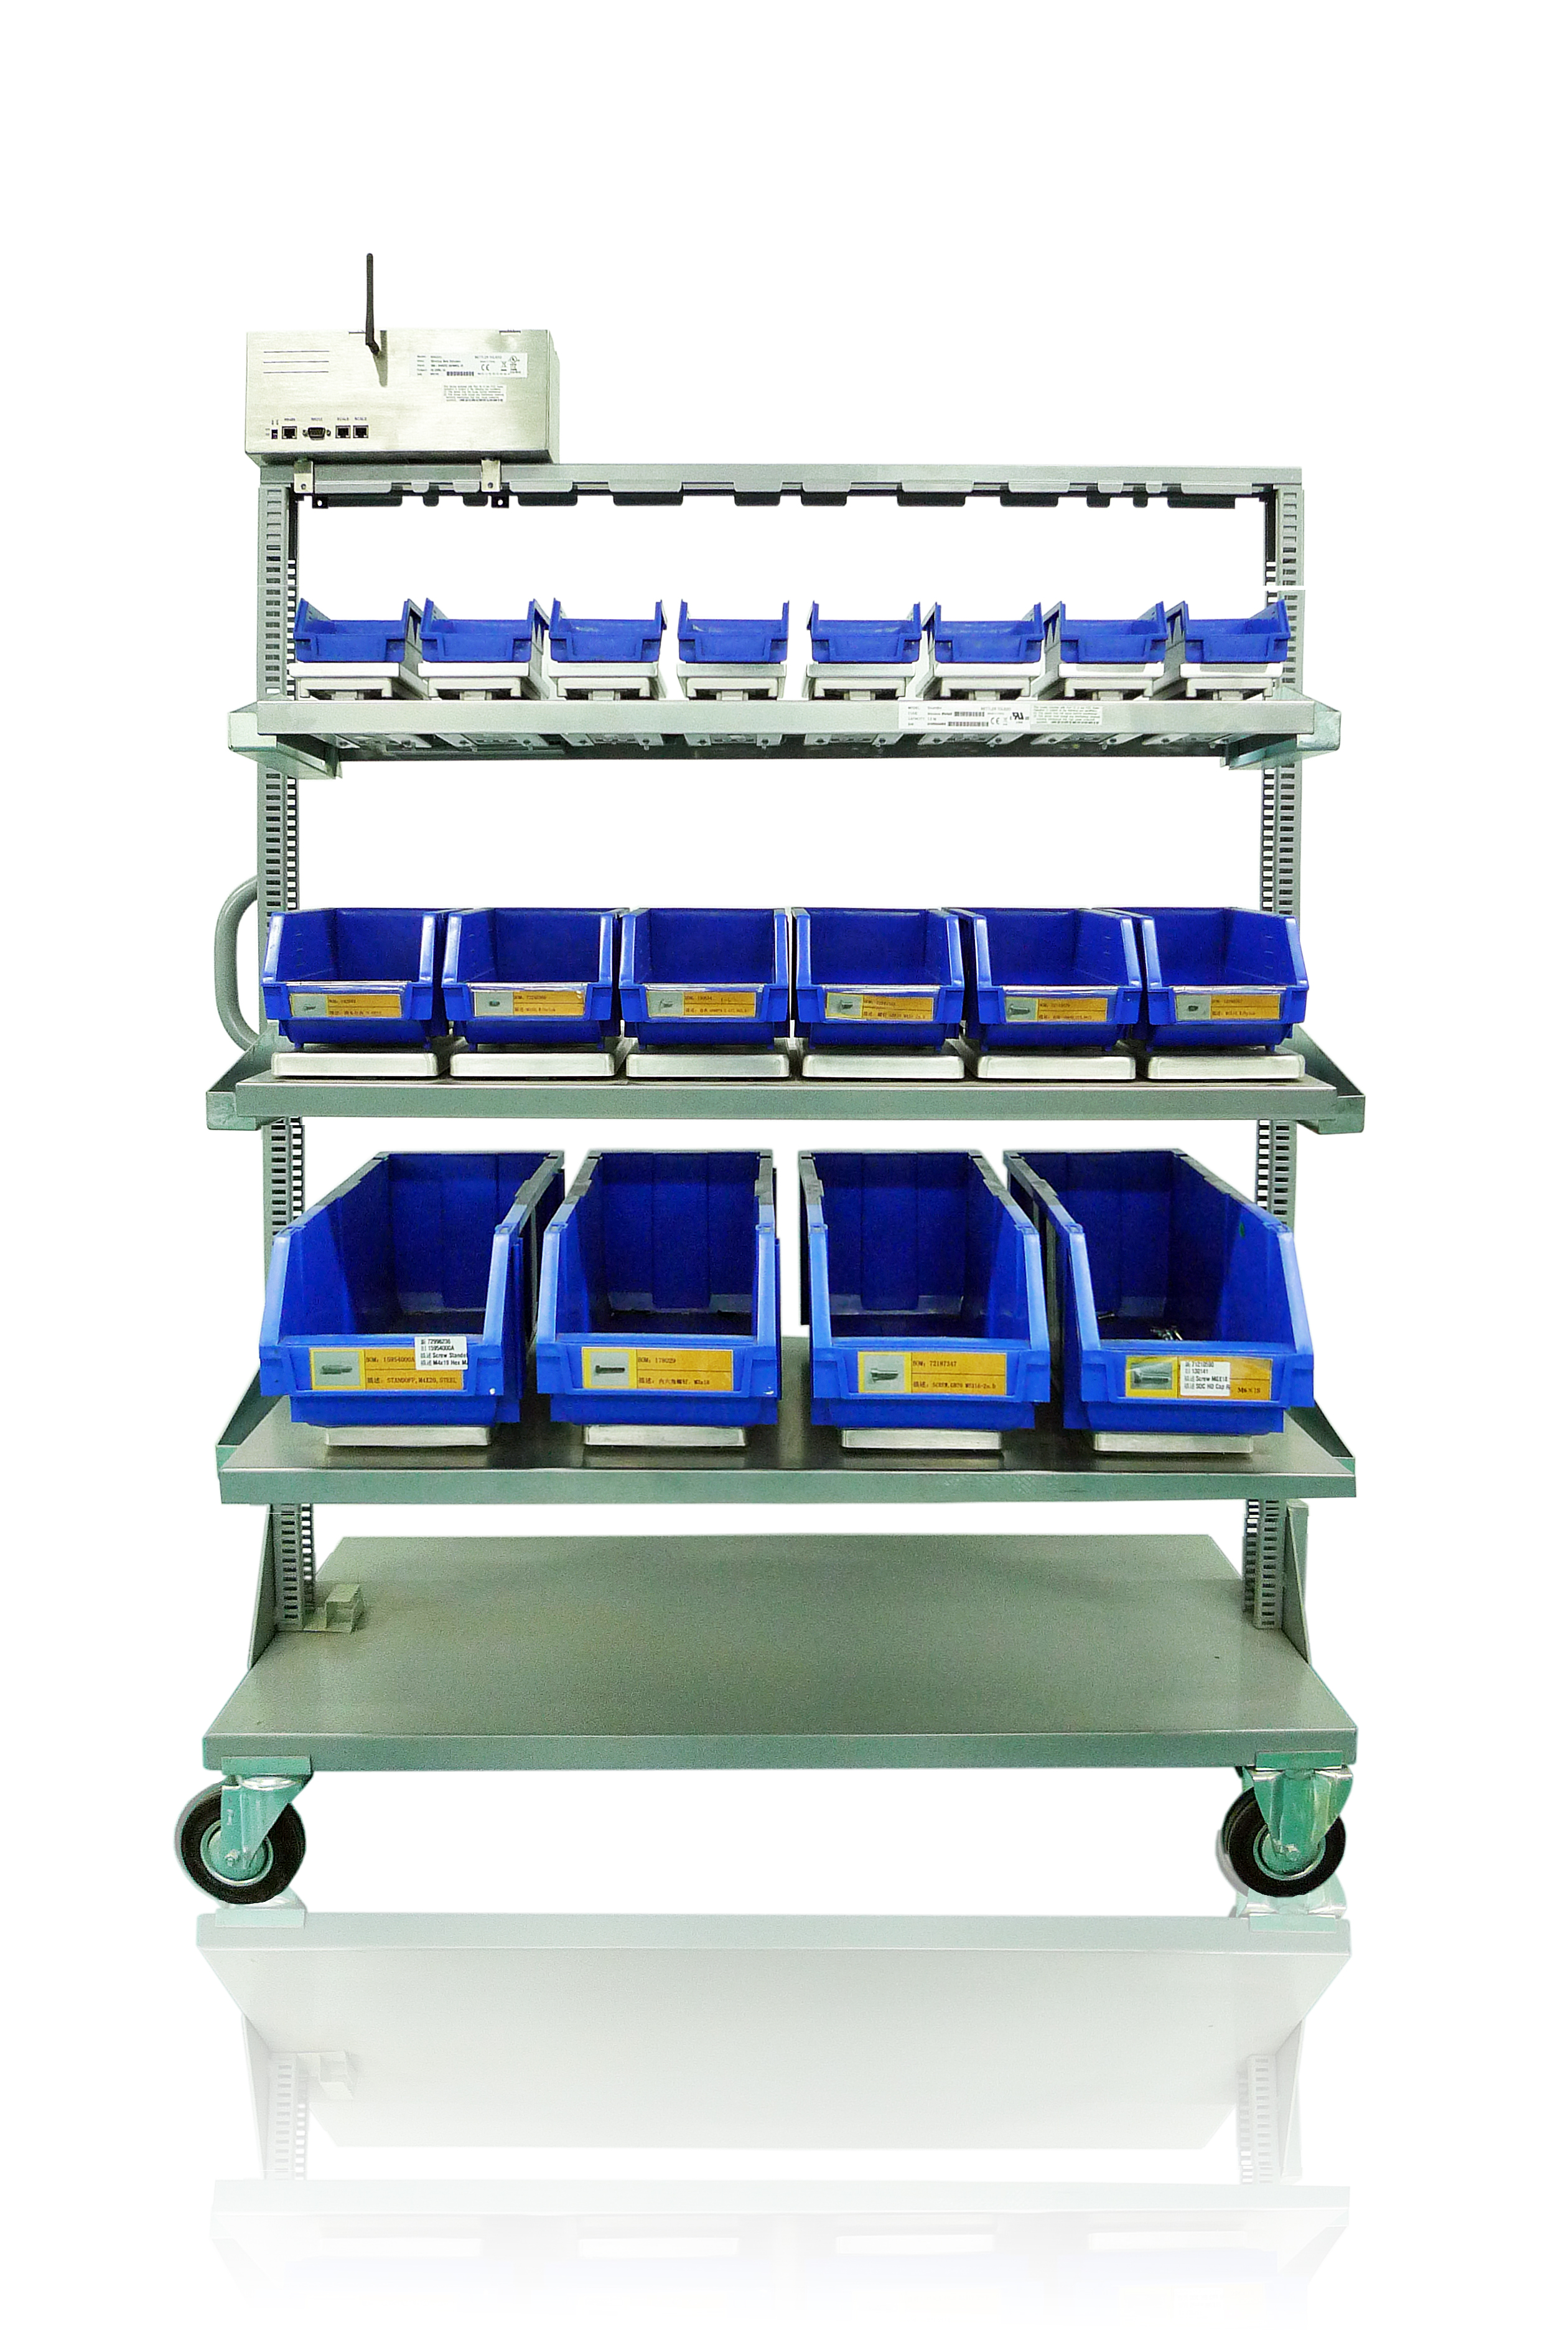 eTurns Demo - eTurns eVMI Sensor-managed Inventory Solution -- mobile cart option